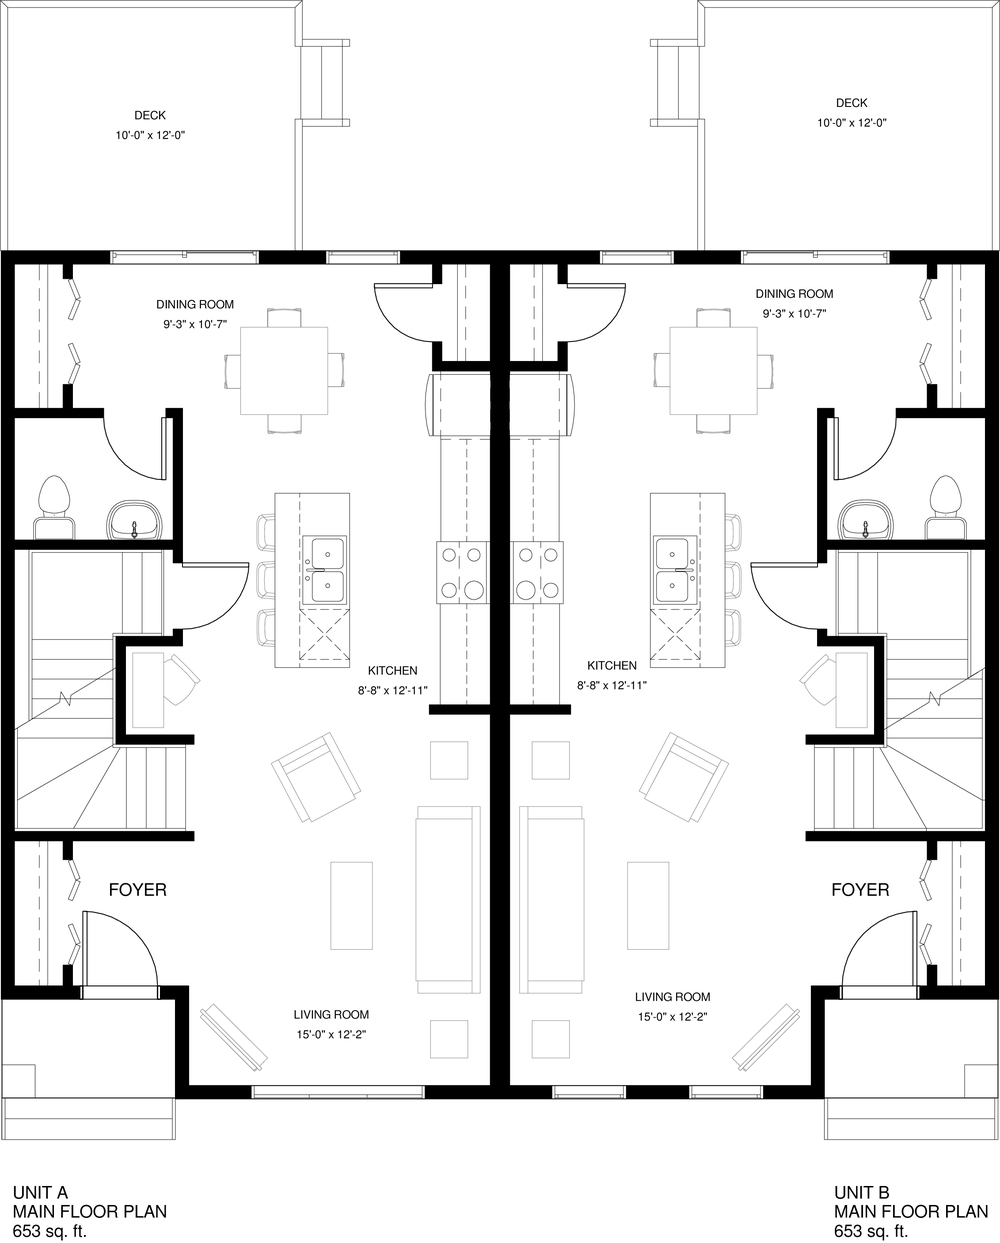 Main Floor  653 sq ft per Unit